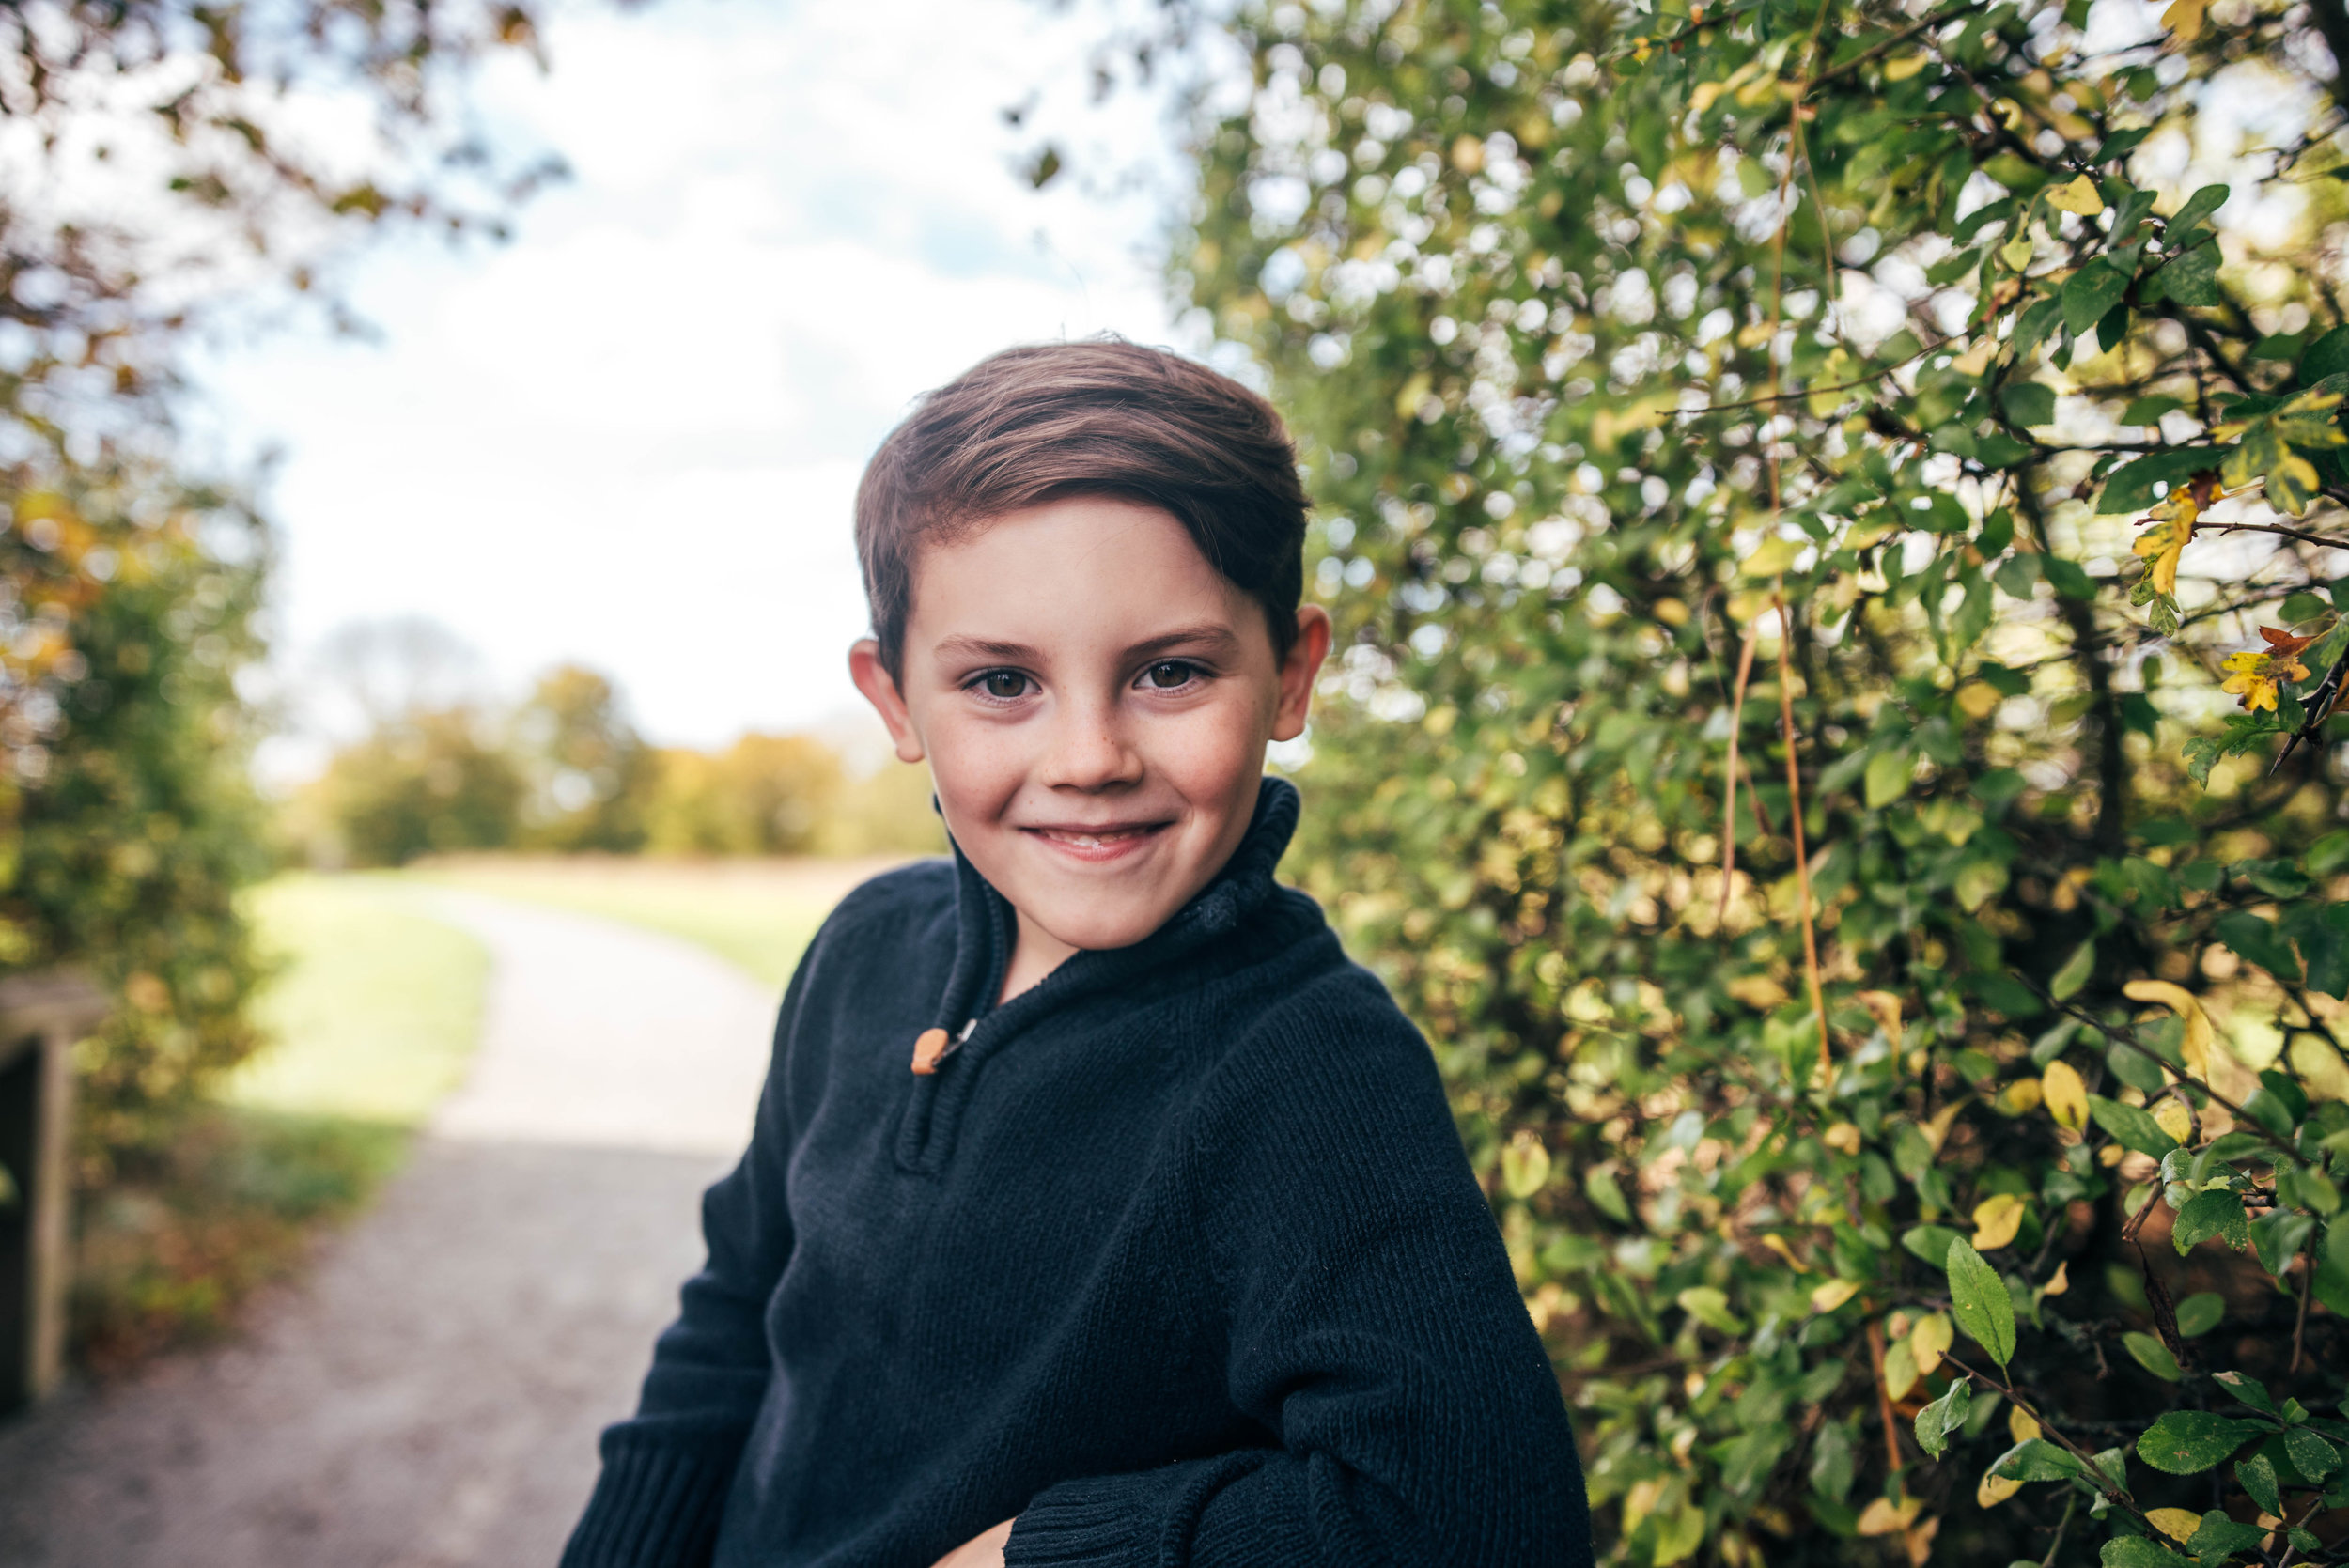 Little boy leans on handrail Essex Documentary Portrait Photographer